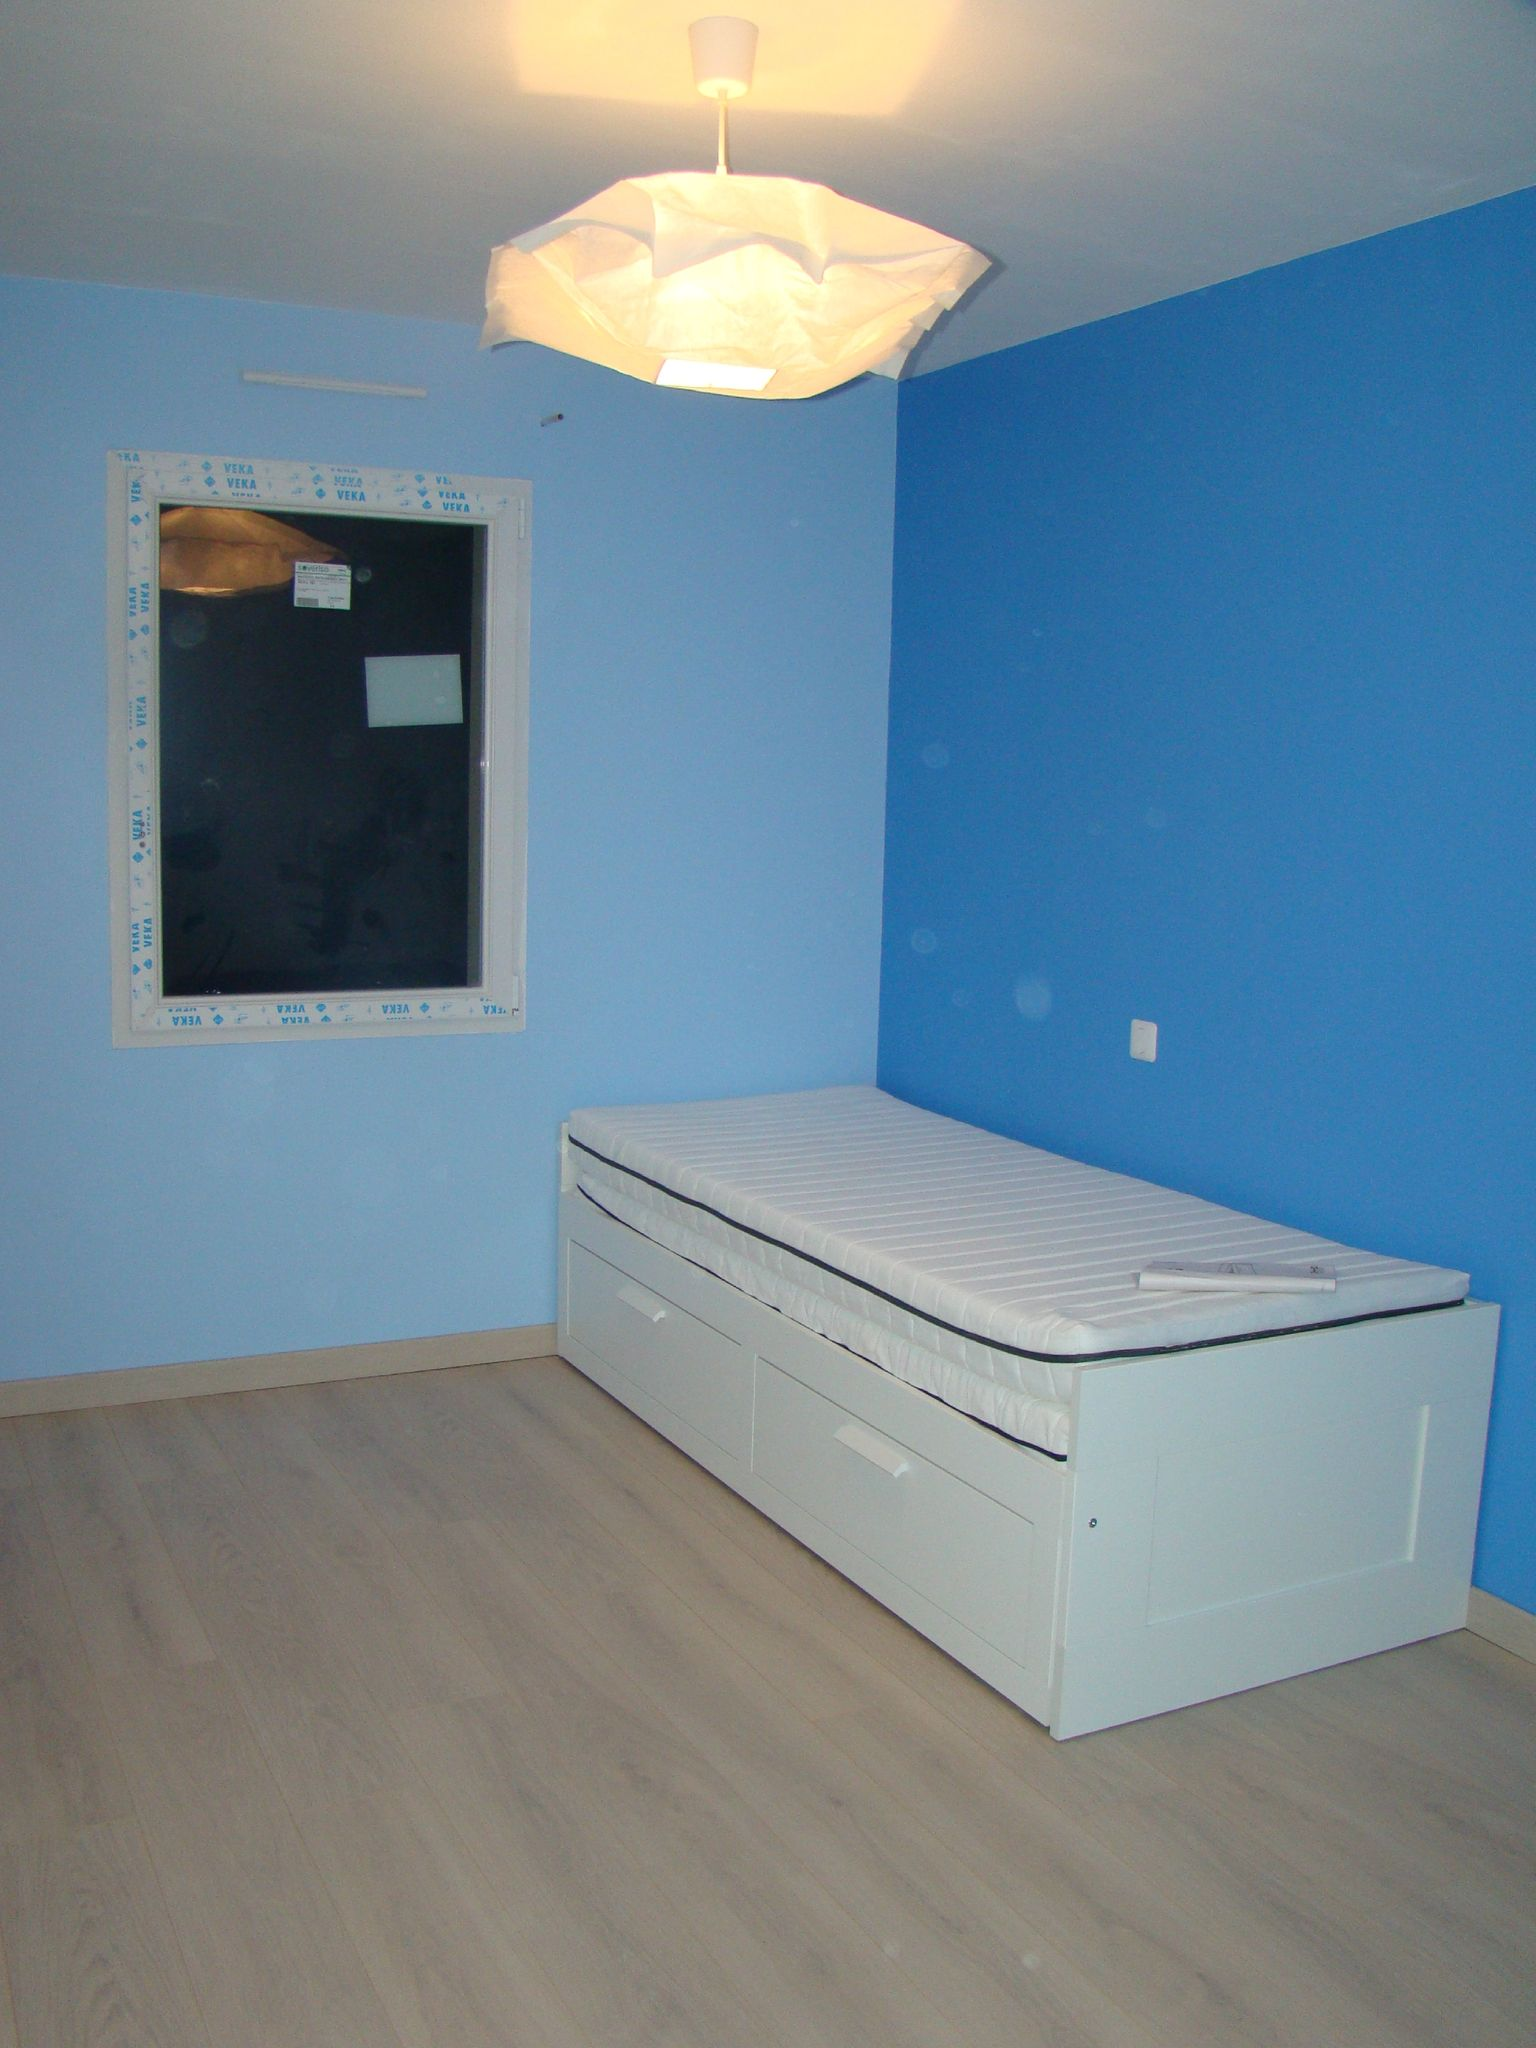 Affordable fin des grands travaux prendre racines with commode brimnes ikea 3 tiroirs - Commode brimnes ikea 3 tiroirs ...